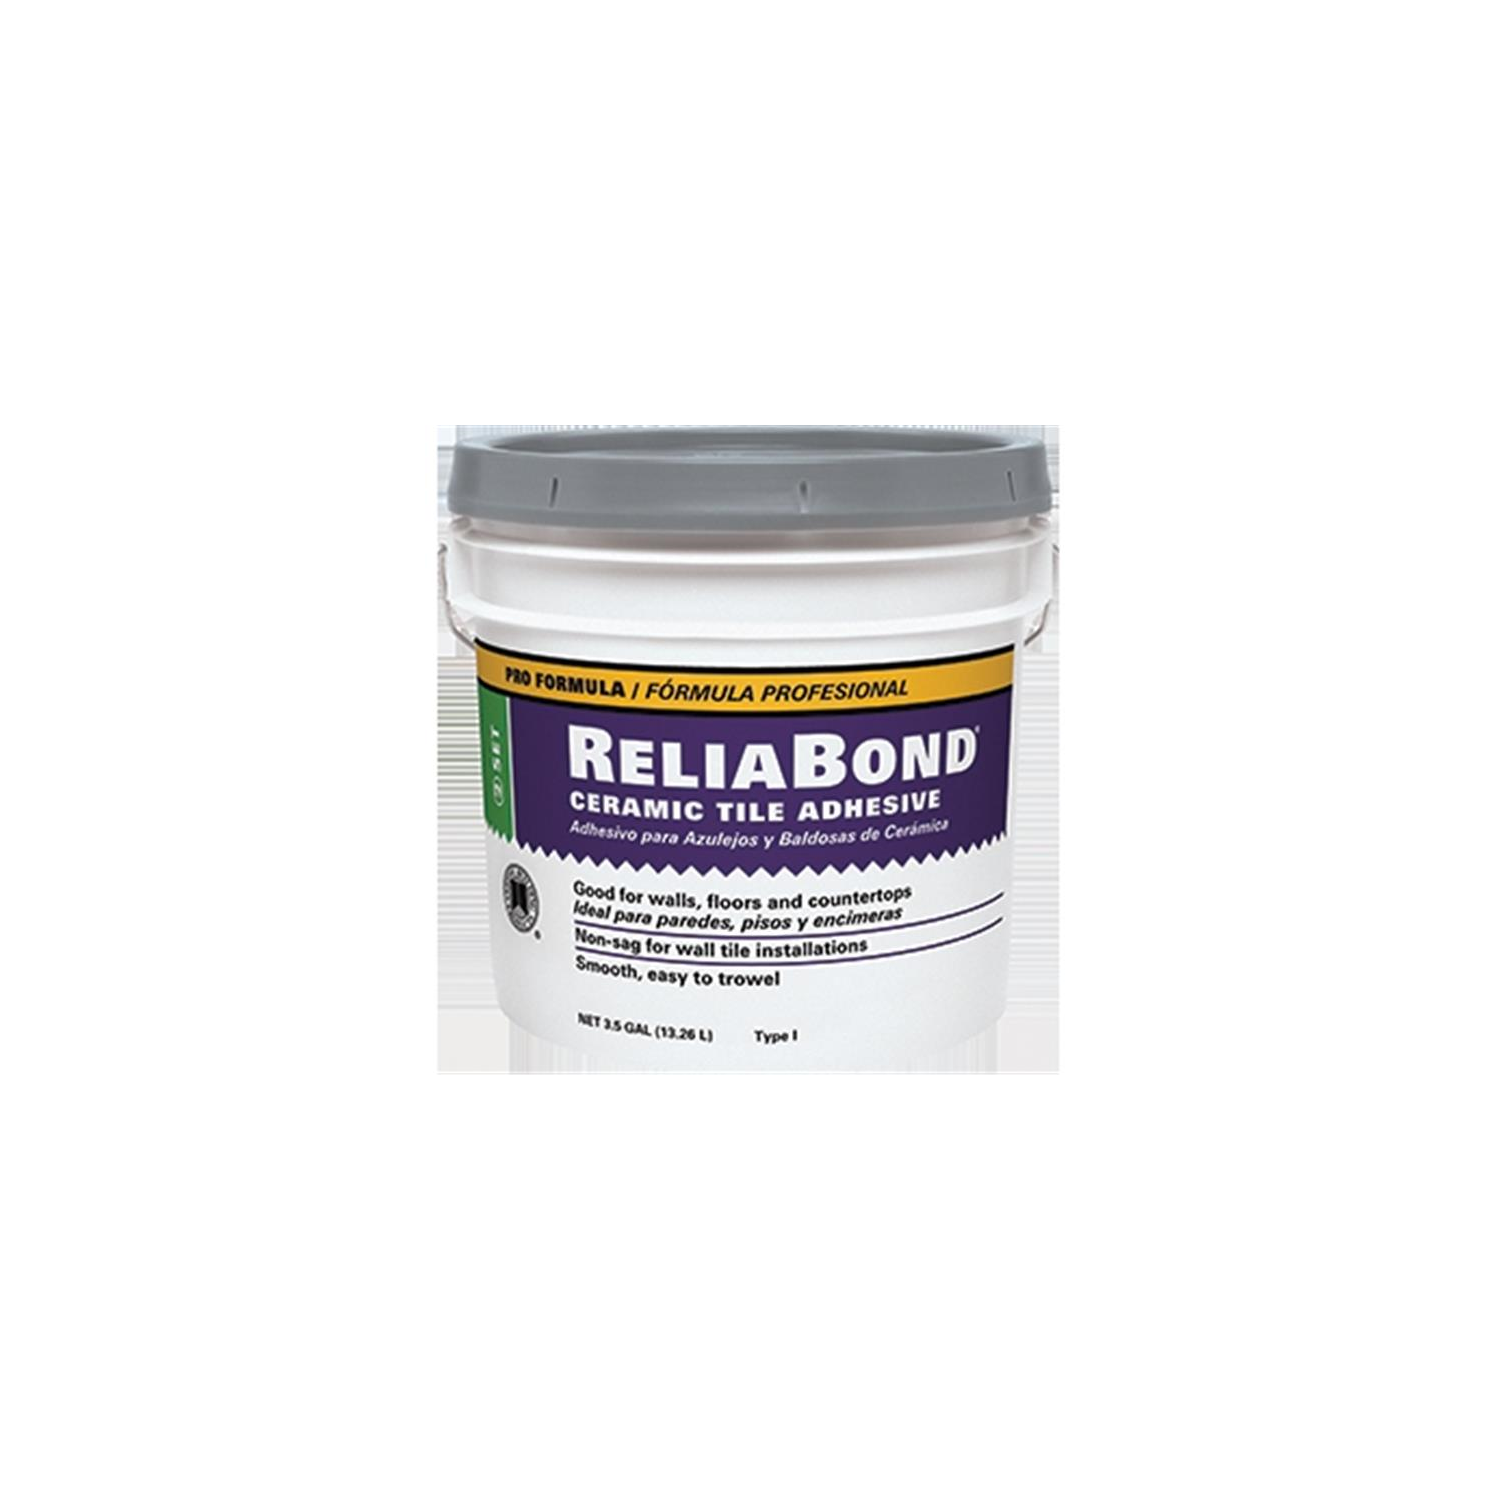 C building products rbm3 35 gallon reliabond ceramic tile c building products rbm3 35 gallon reliabond ceramic tile adhesive glue adhesives best buy canada dailygadgetfo Images